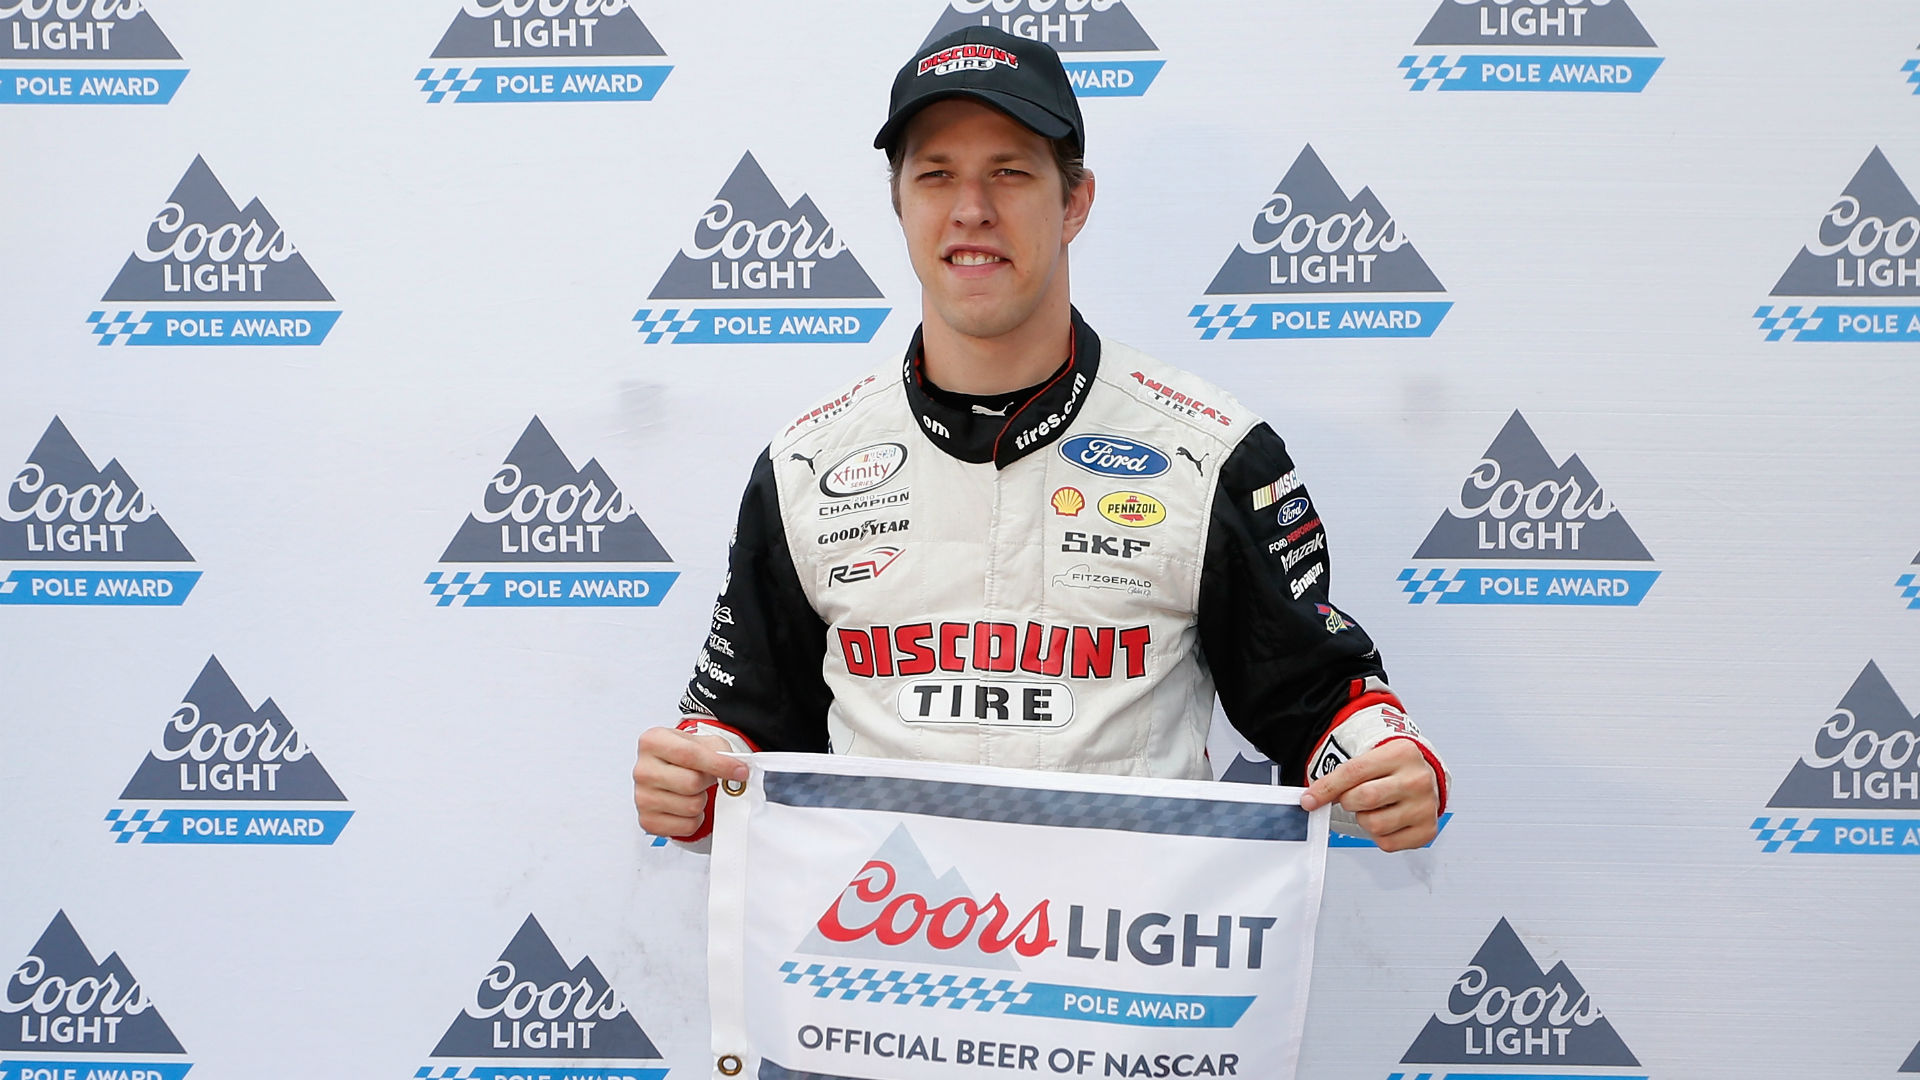 Coors Light splits with NASCAR after nearly 10 years